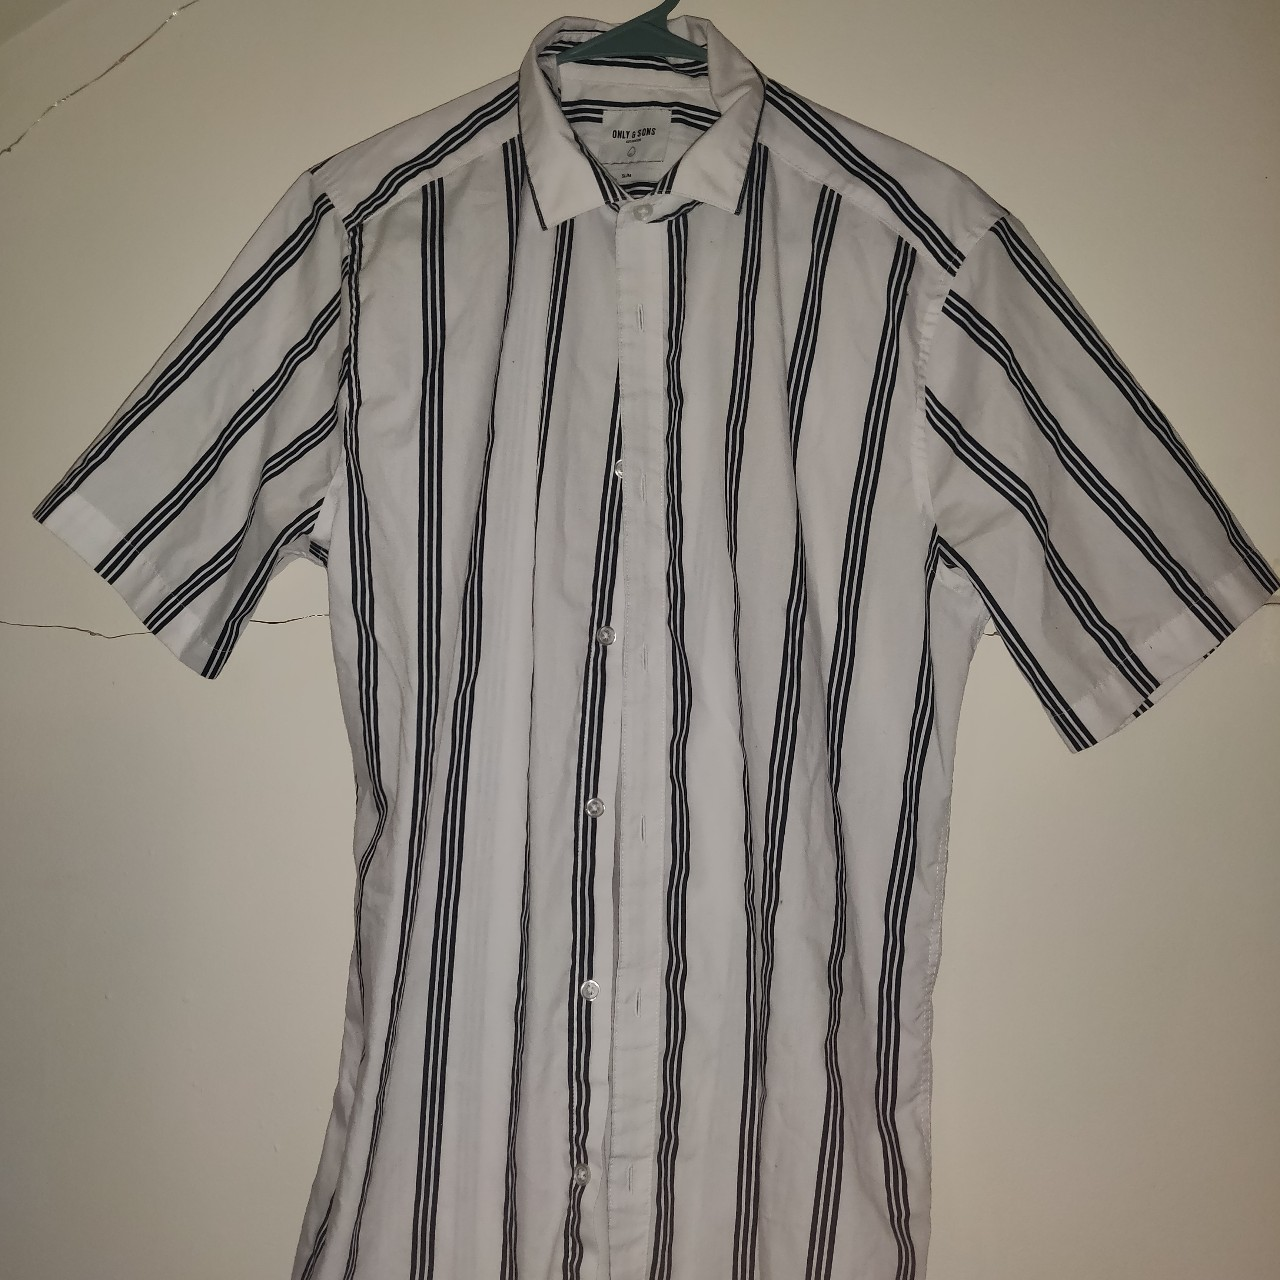 Product Image 1 - Men's medium striped button up